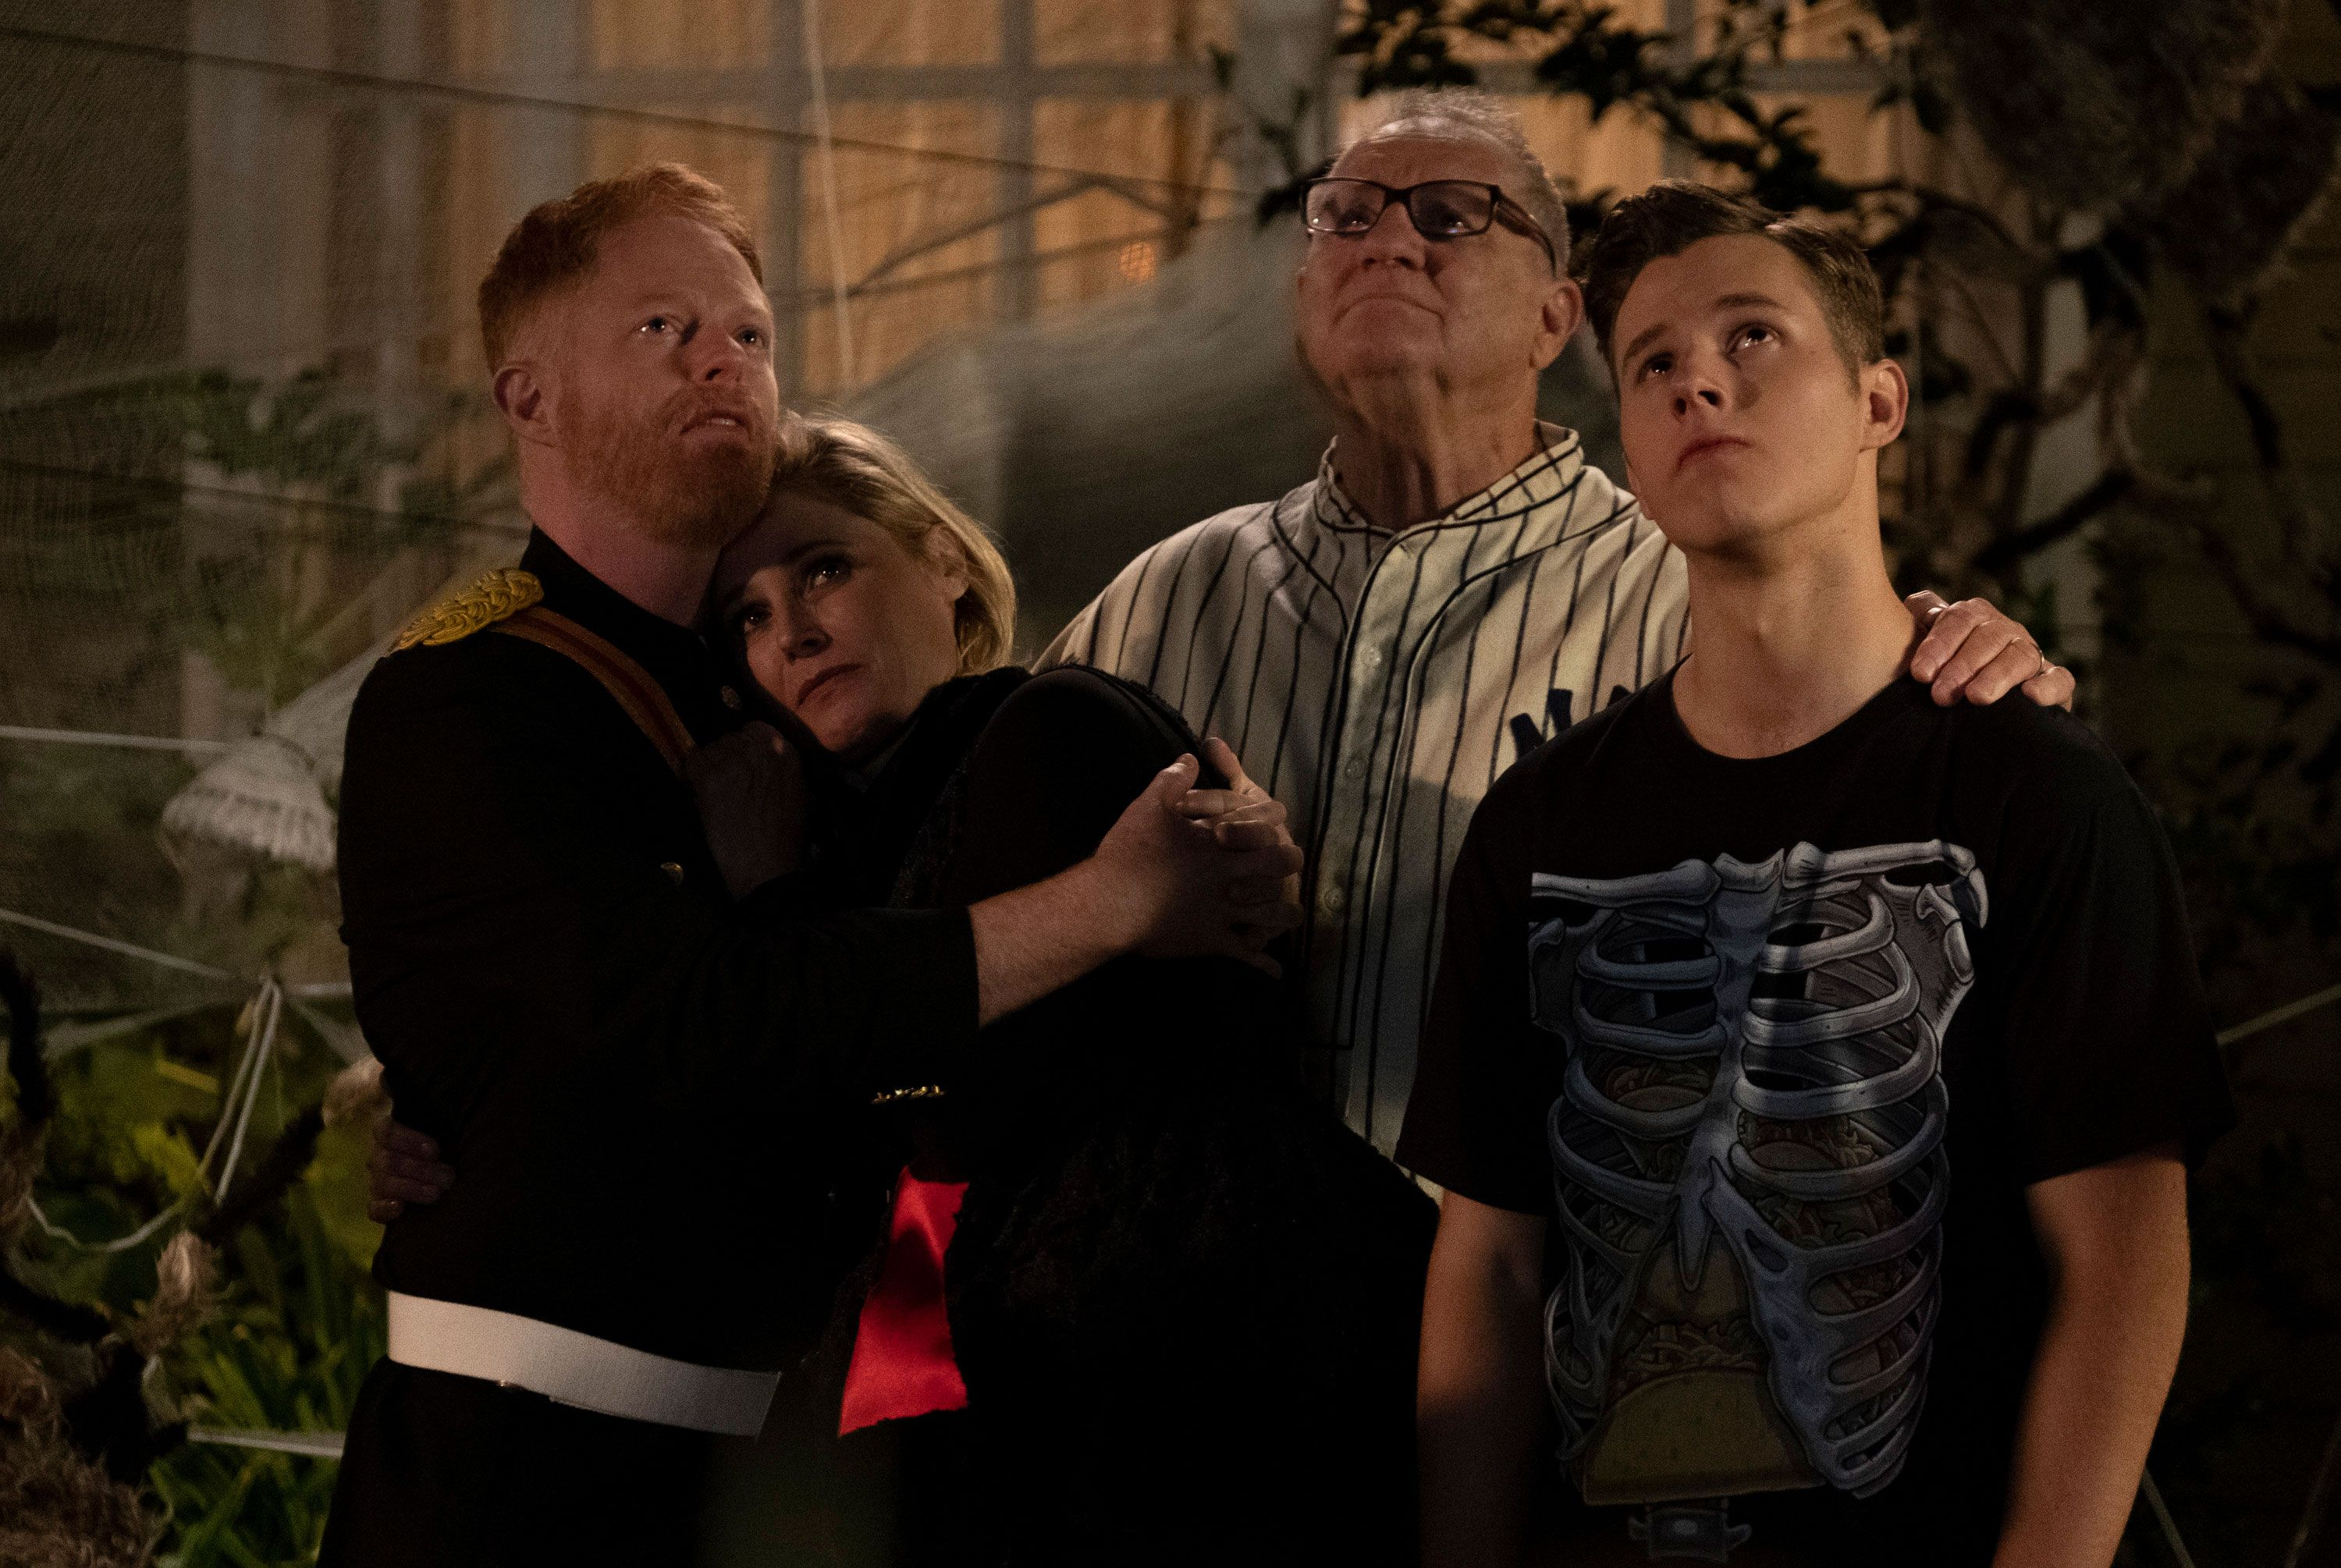 modern family kills recurring character in halloween episode